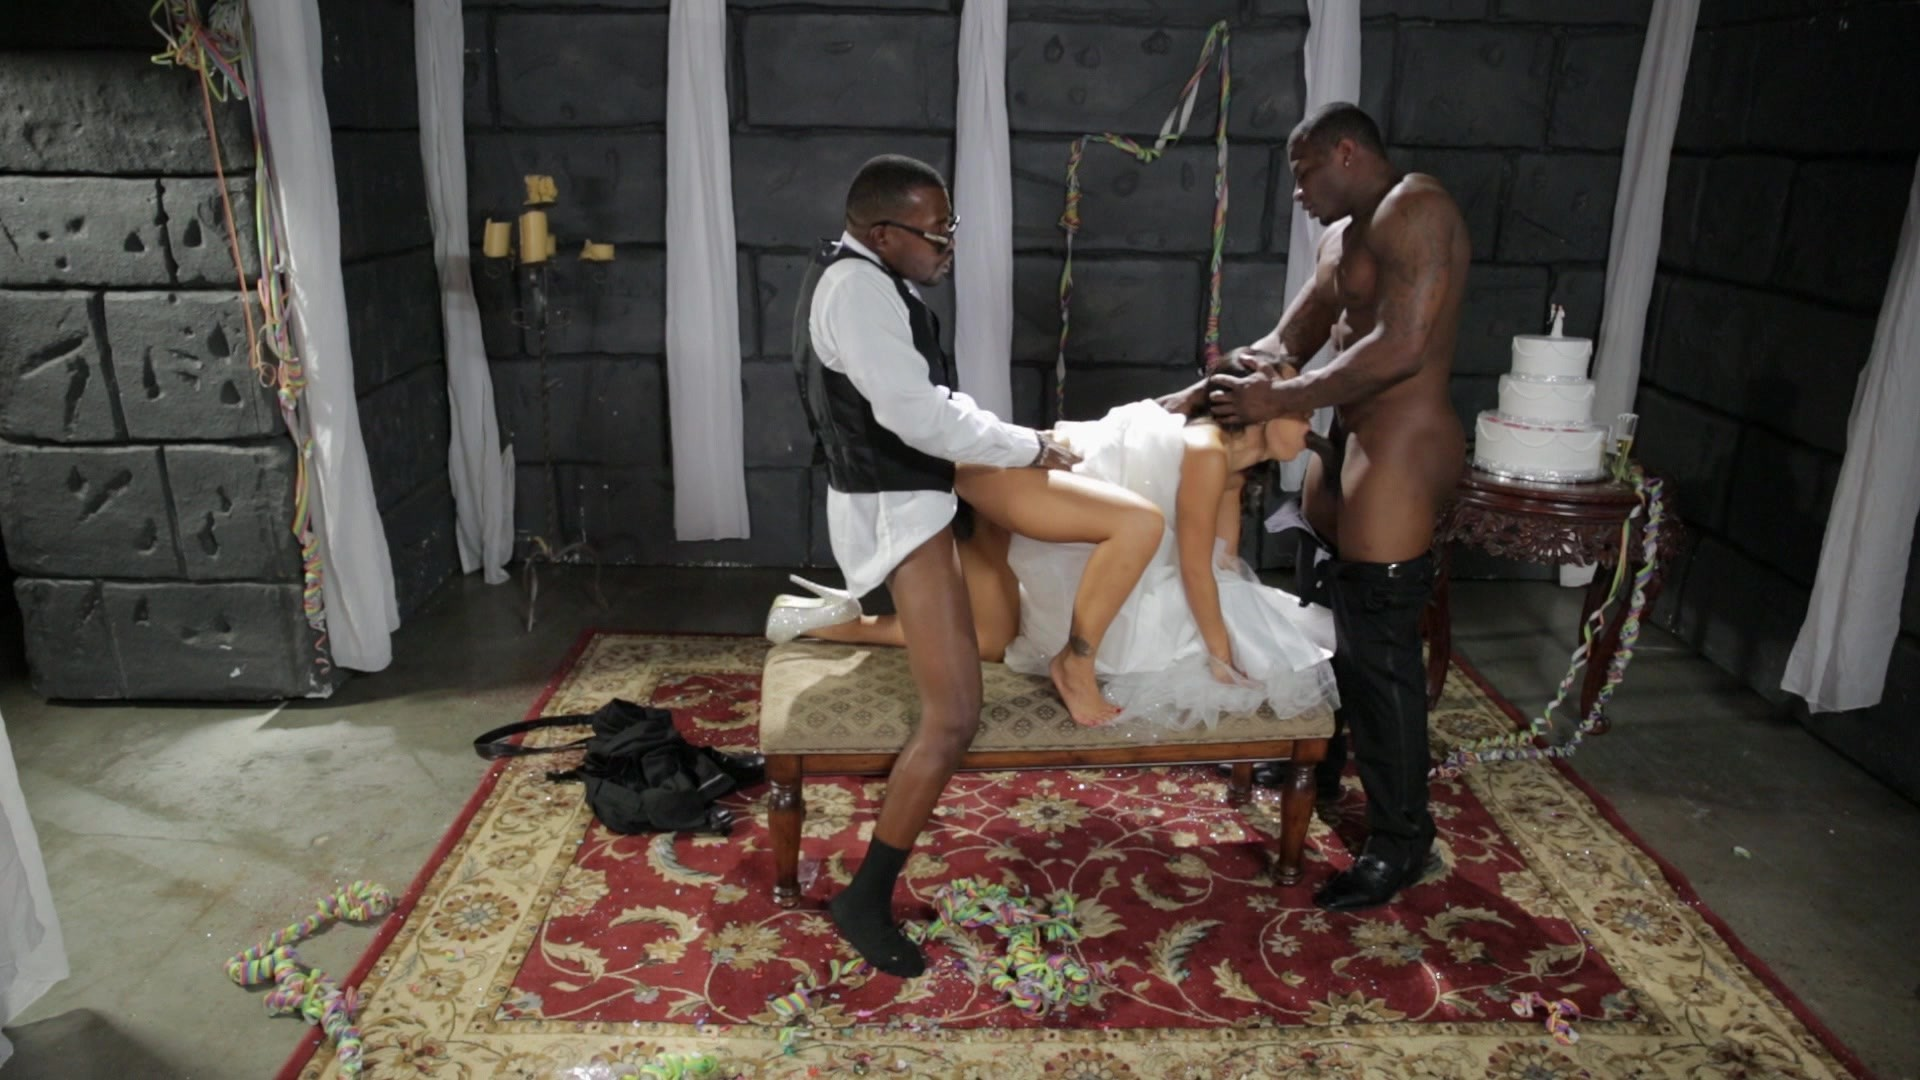 Scene with Asa Akira, Rob Piper XXX and Moe Johnson - image 8 out of 20